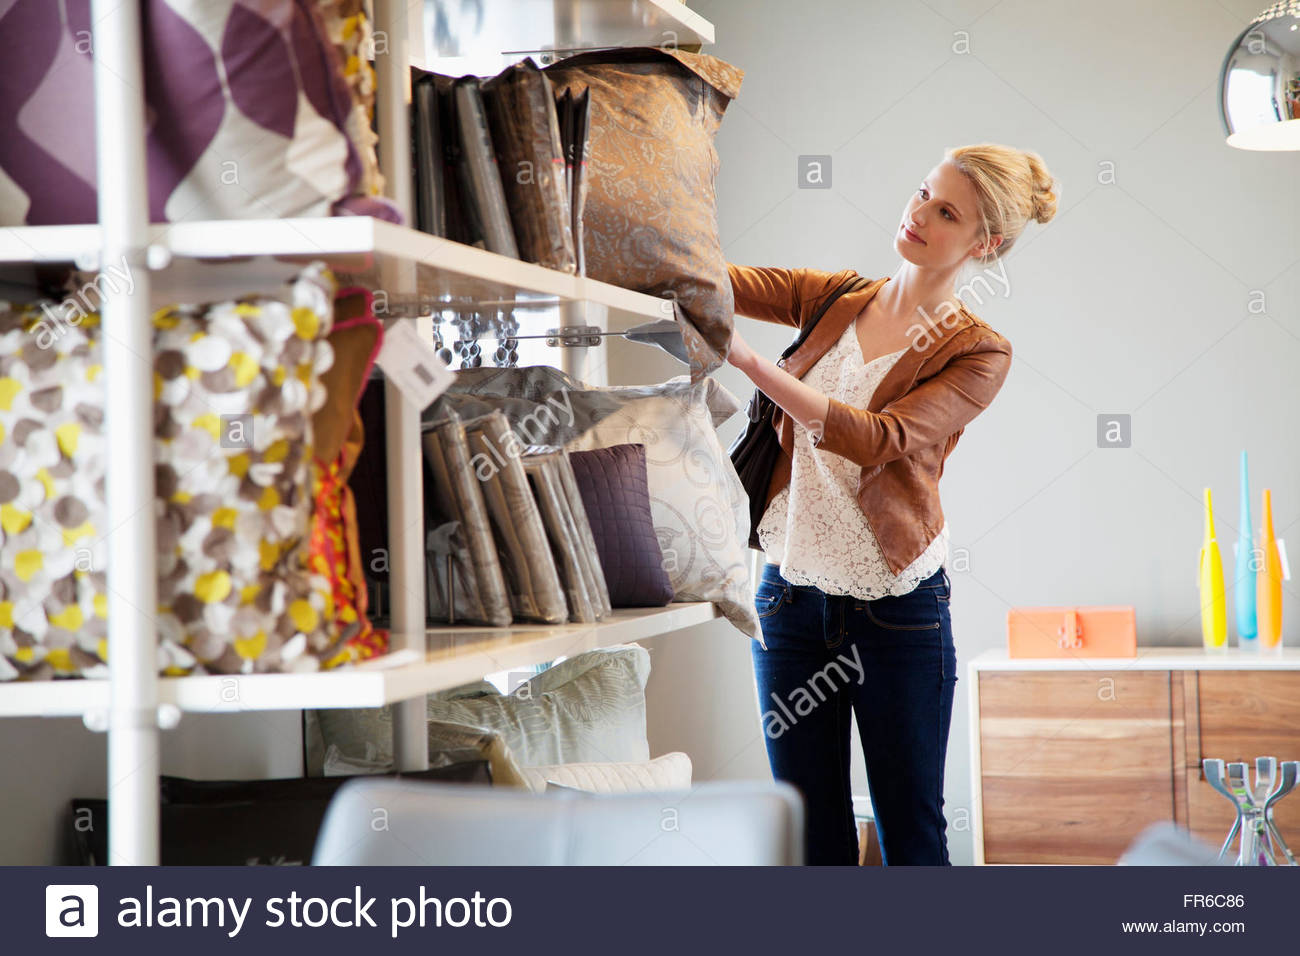 young woman shopping for household products - Stock Image